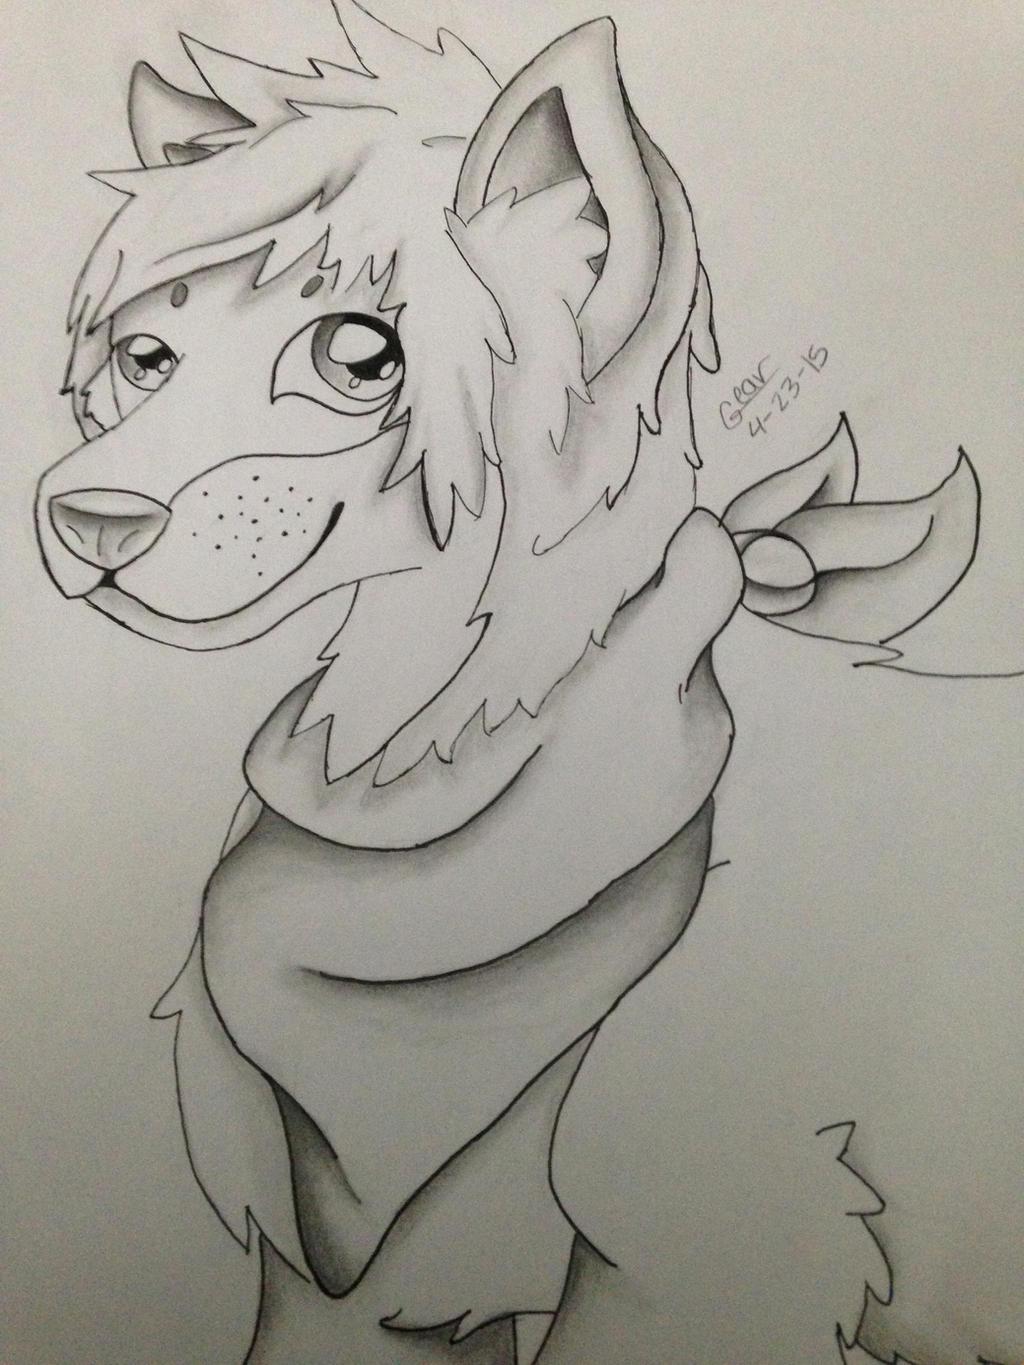 Cool Drawings Of Animals Cool Drawings Of Animals Best Wallpaper moreover Wolf Robe Greg Joens furthermore Void 277230057 further 409616528587095829 furthermore Learn Manga. on realistic drawings of wolves